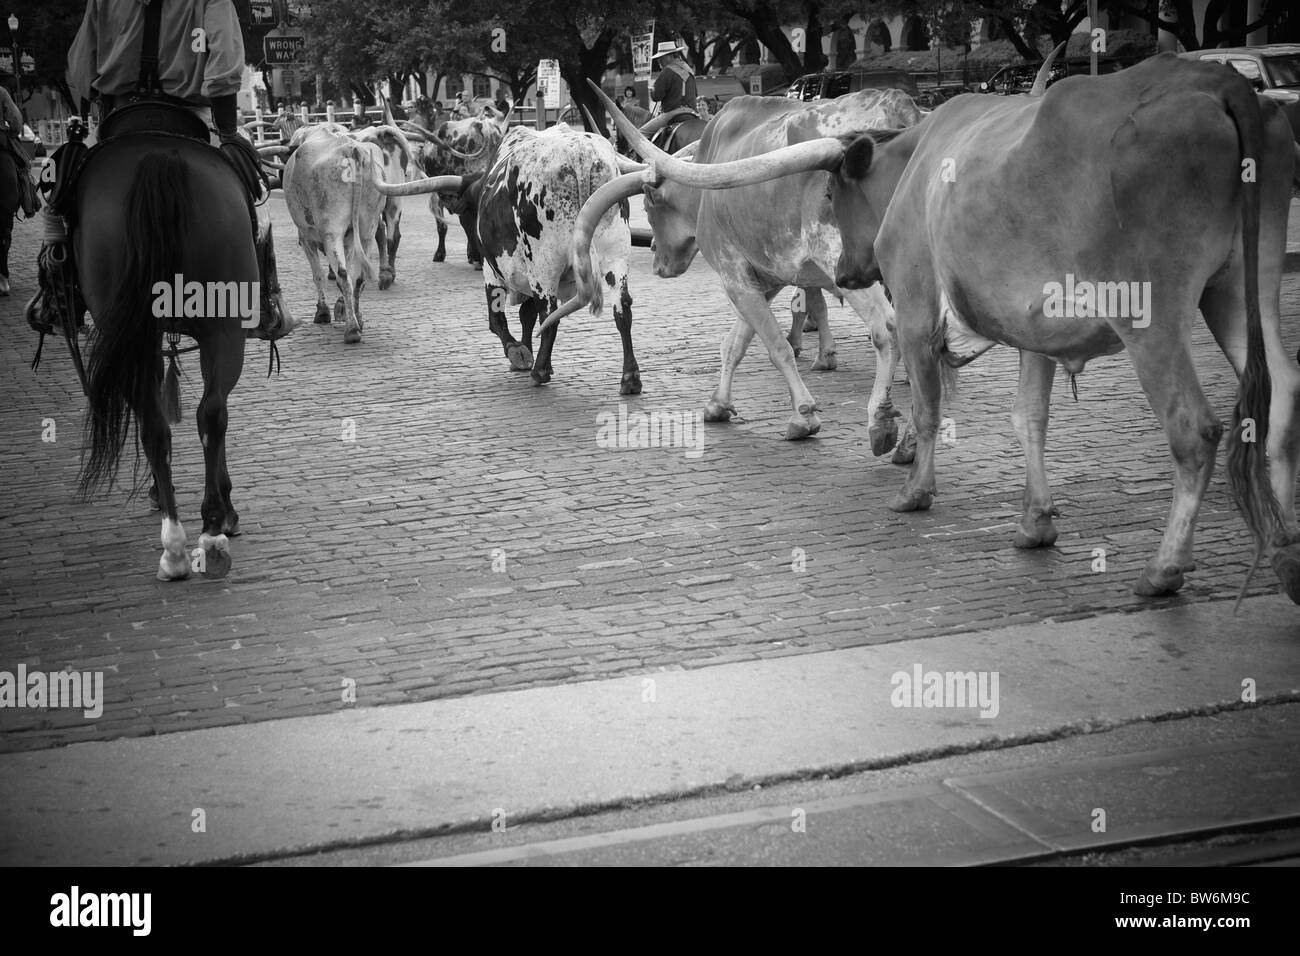 Cowboy at the cattle drive, Dallas Forth Worth Stock Yards - Stock Image